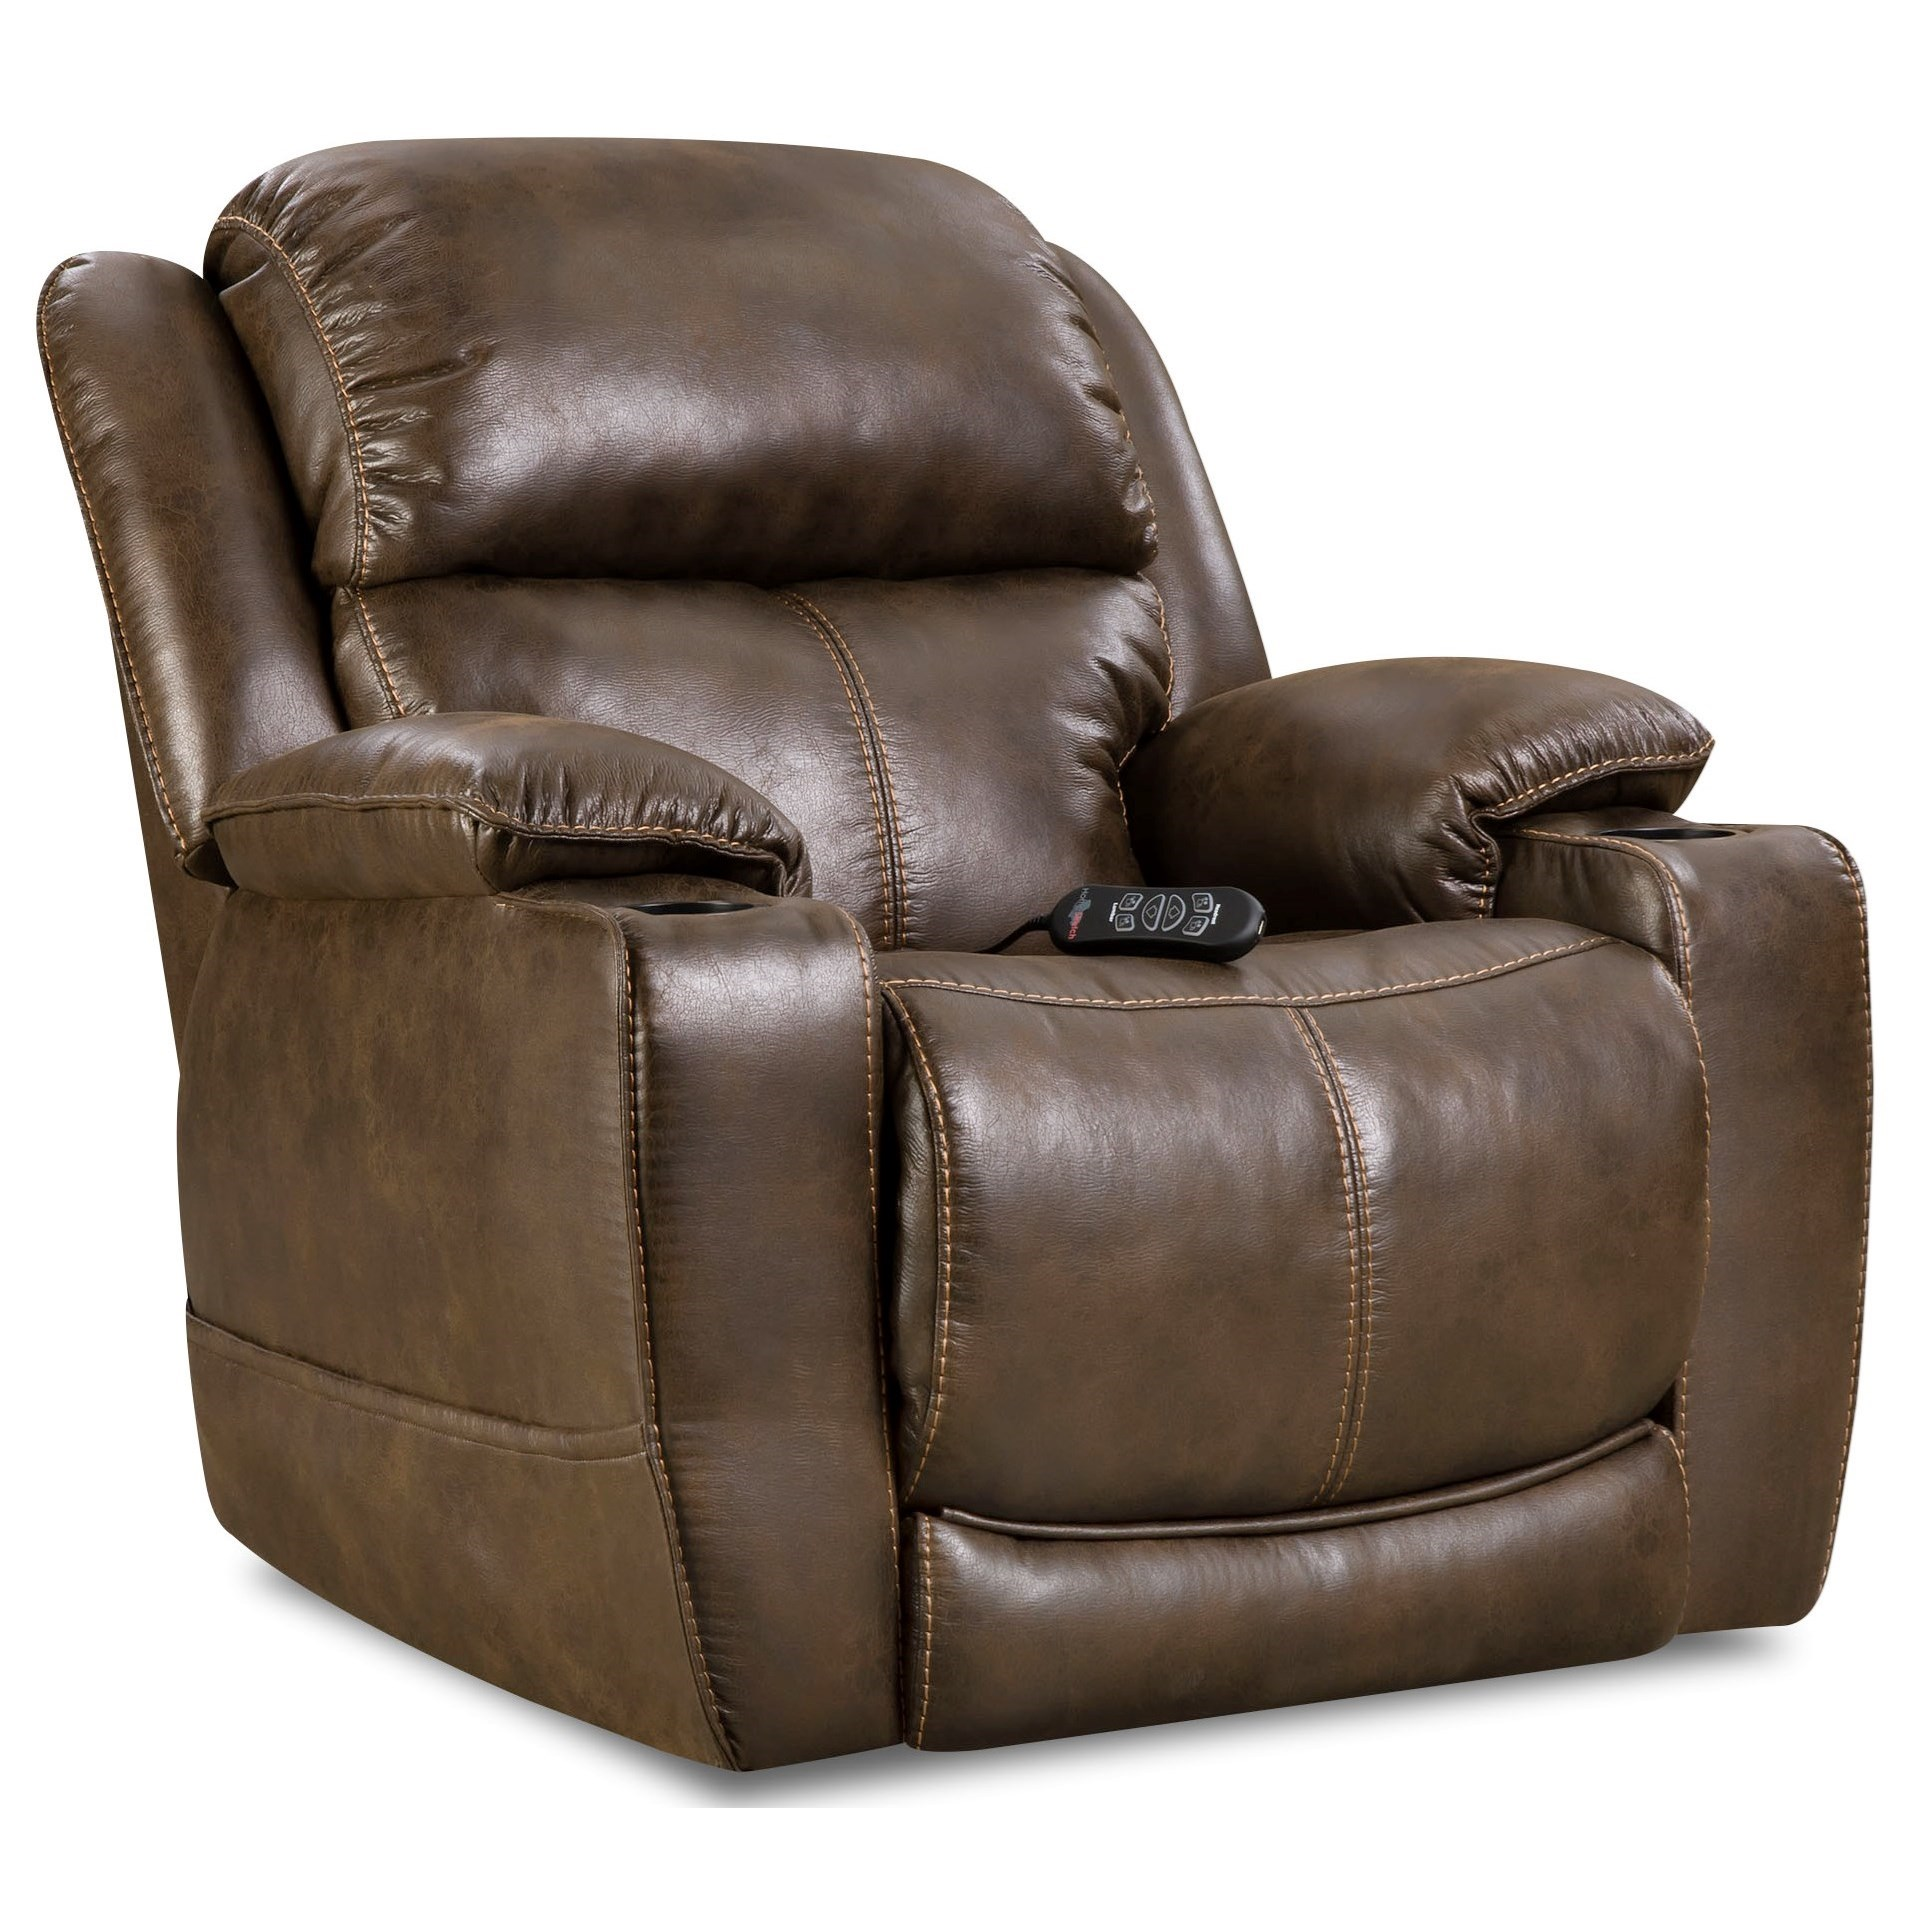 Starship Home Theater Recliner by HomeStretch at Steger's Furniture